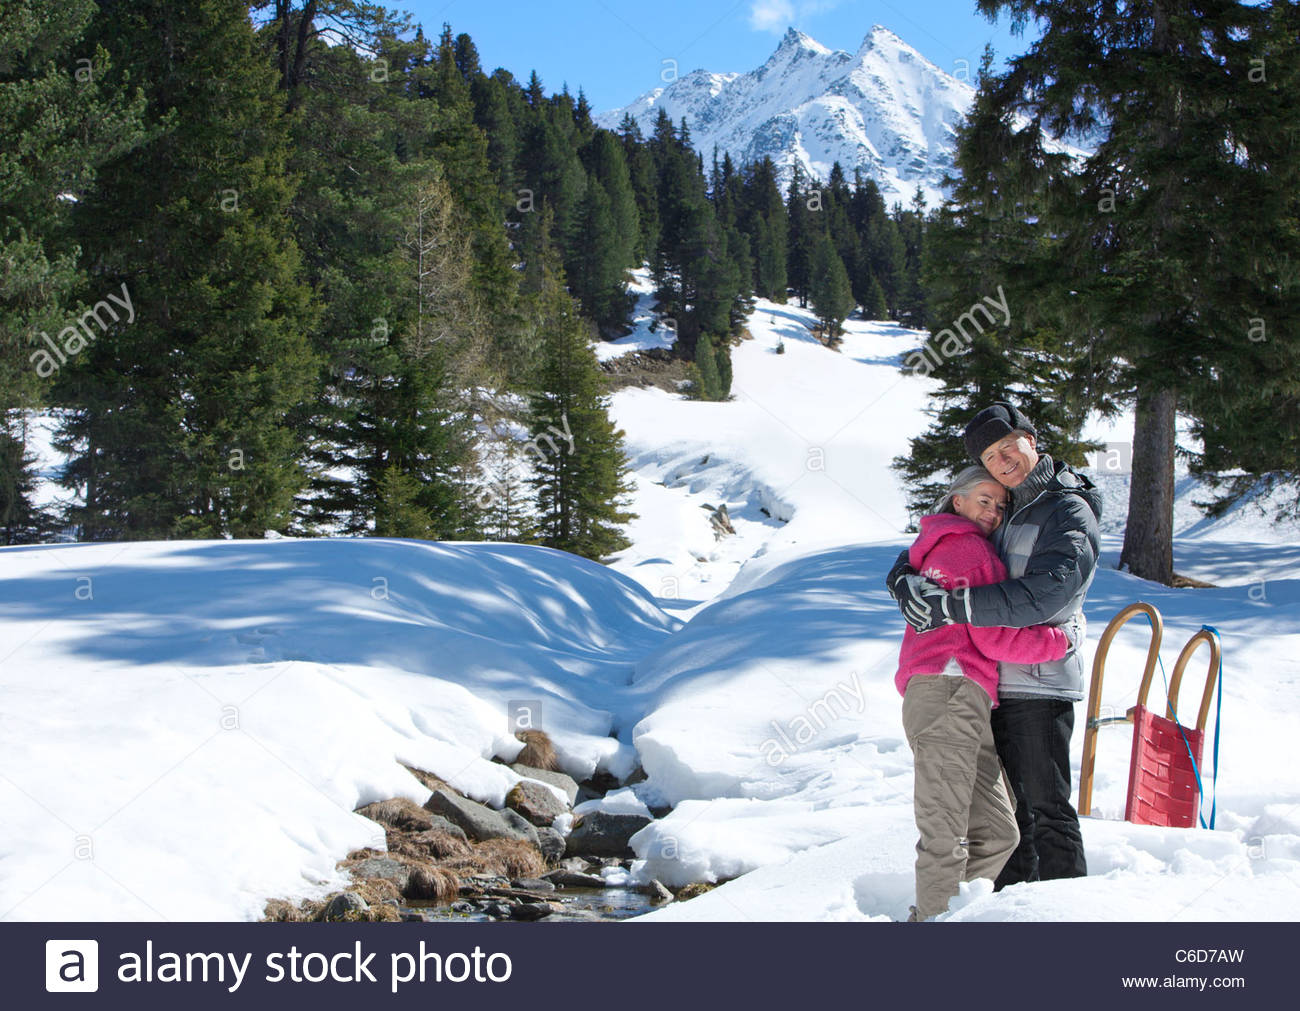 Smiling couple hugging in snowy woods below mountain - Stock Image